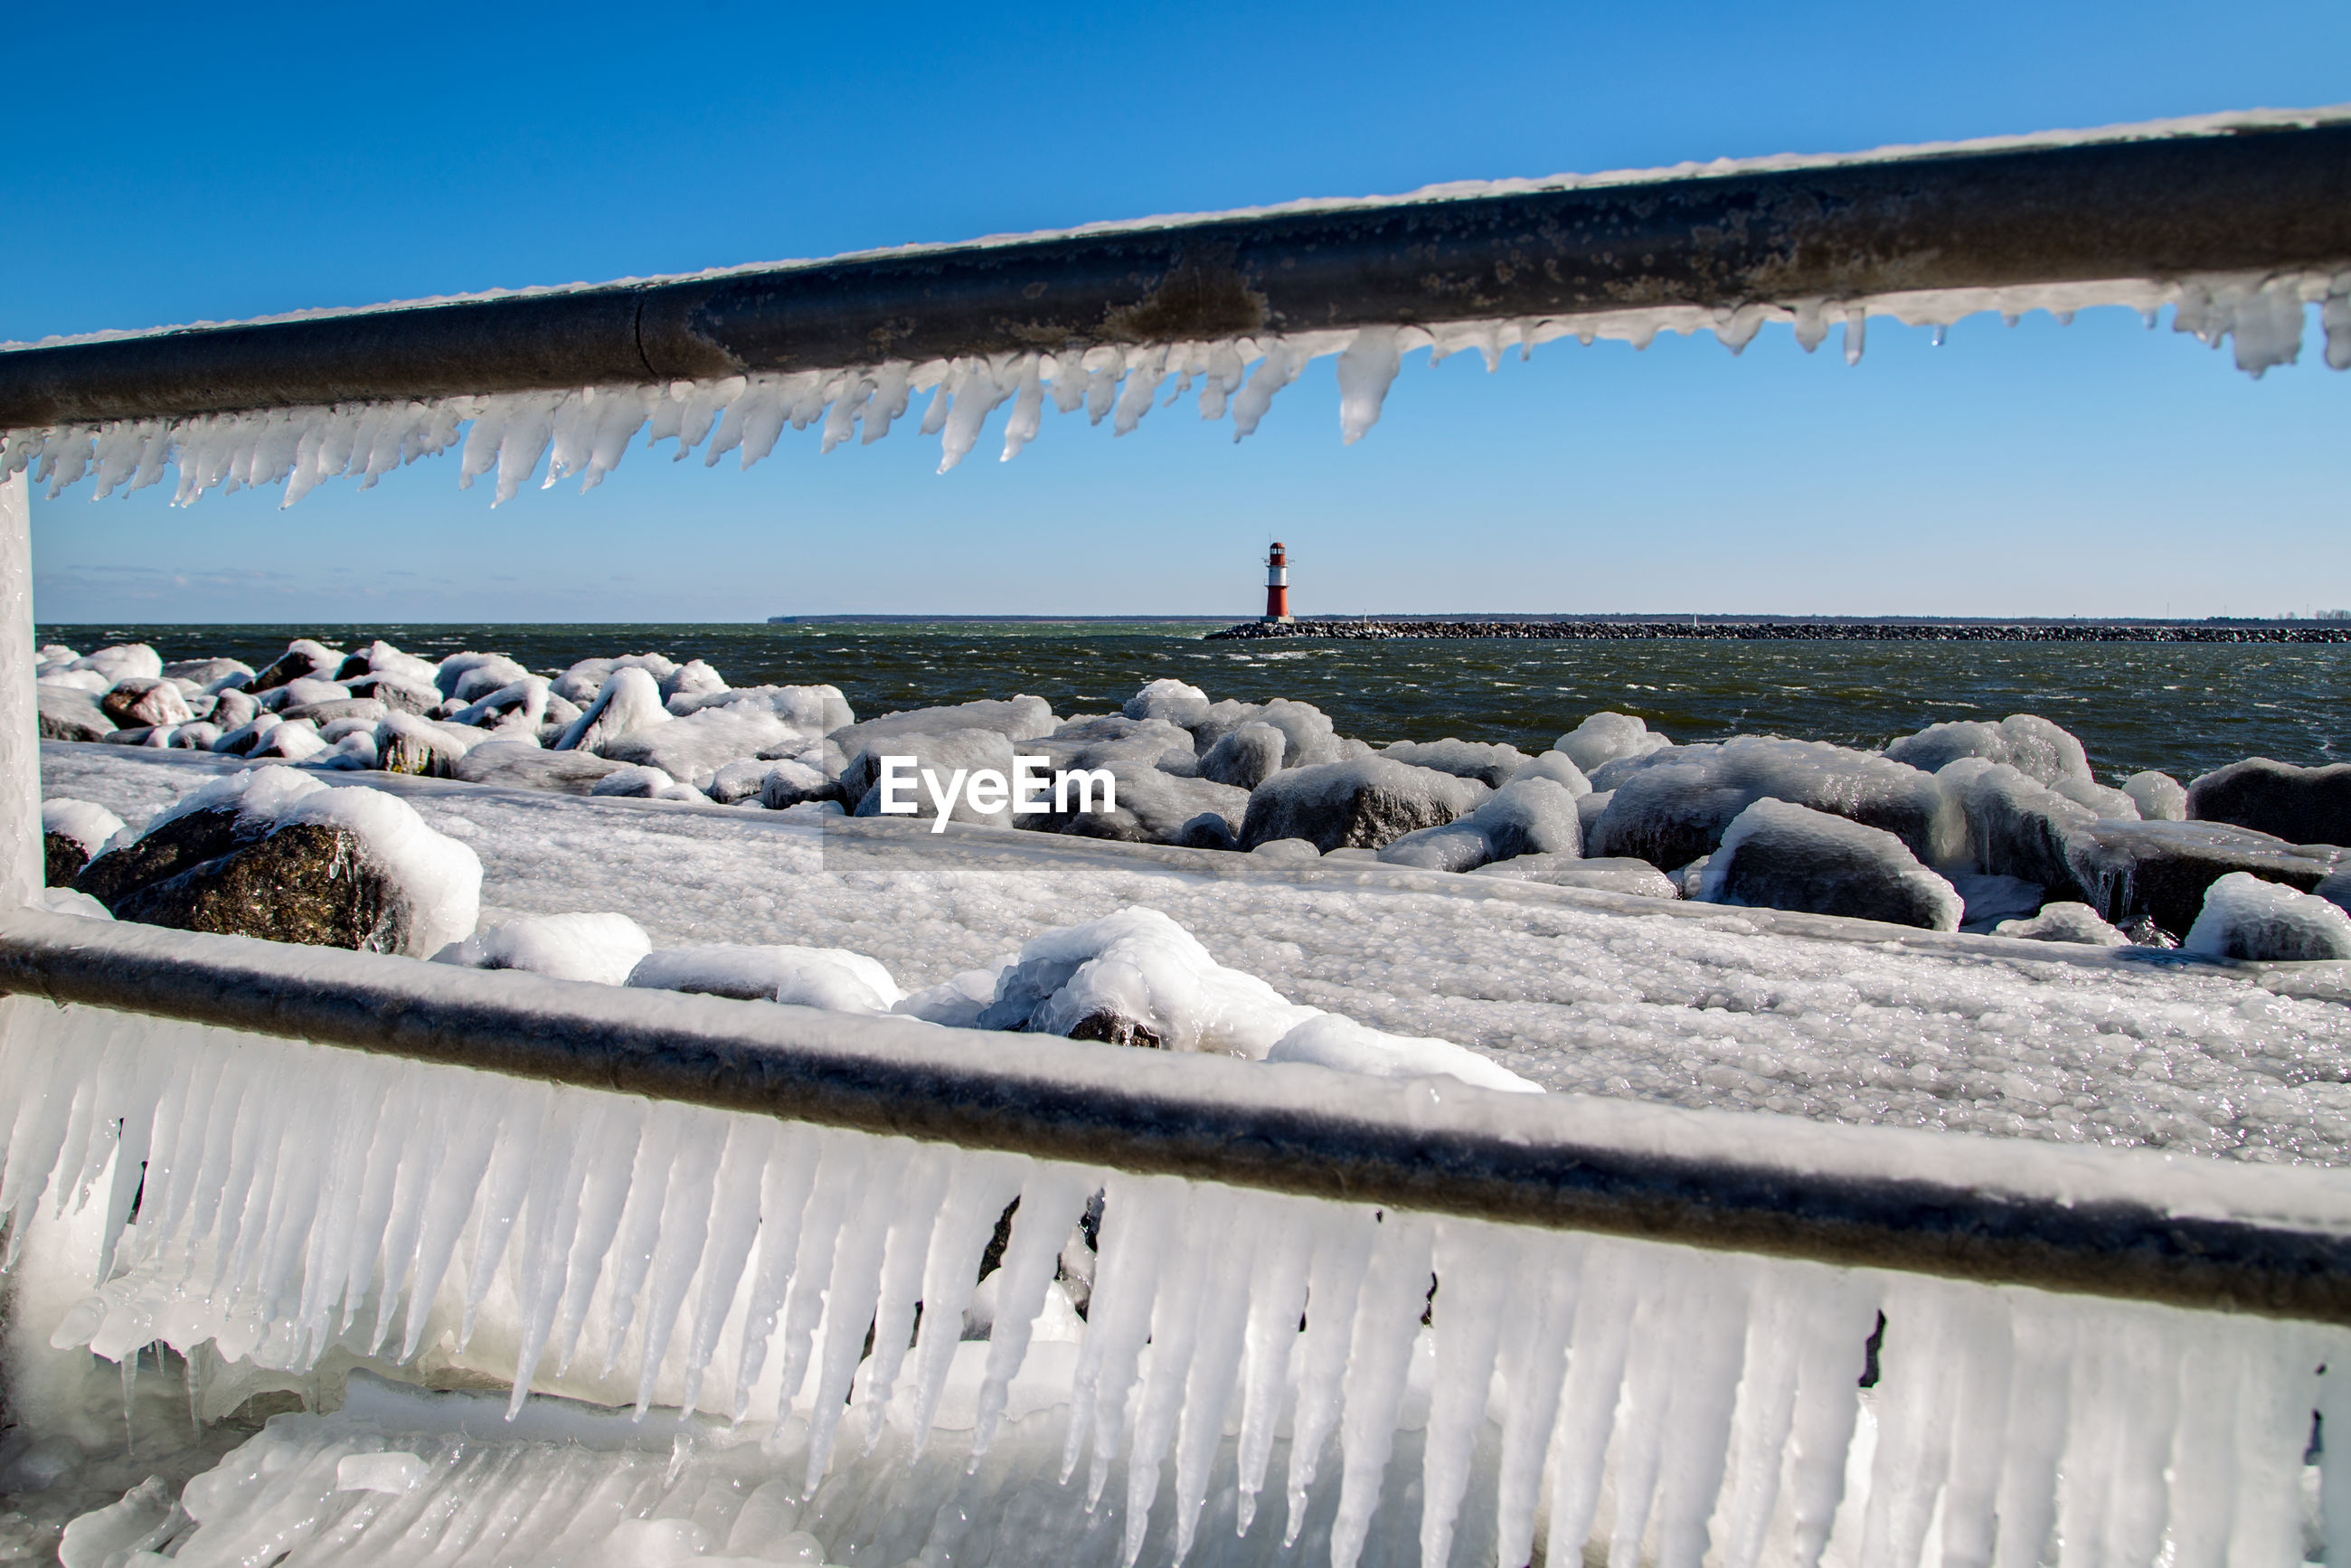 Close-up of icicles on railing by sea against clear blue sky